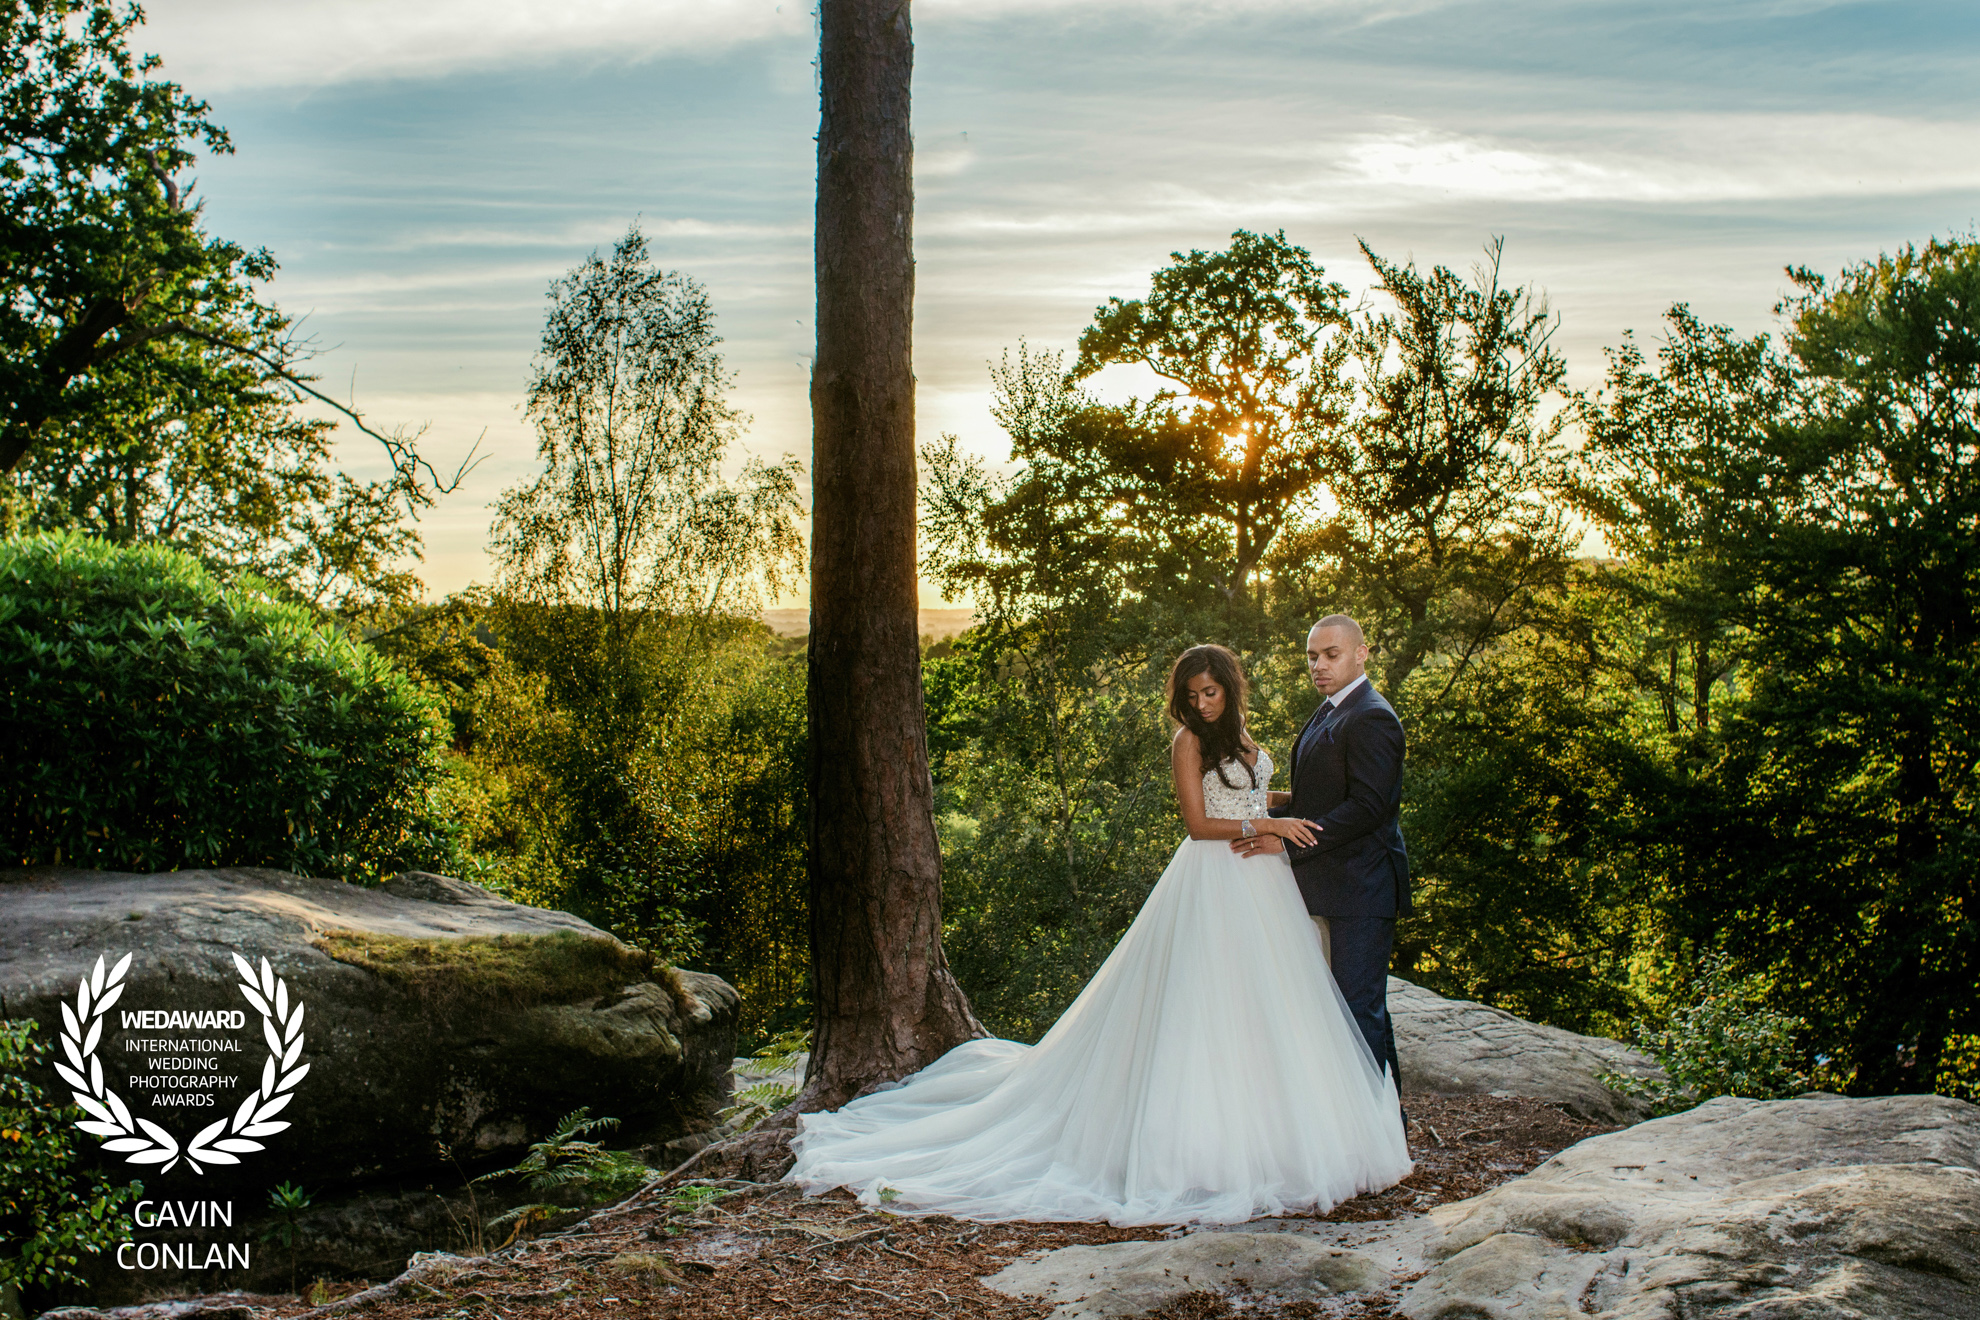 wedding-portrait-high-rocks-kent-gavin-conlan-photography-wedaward-02